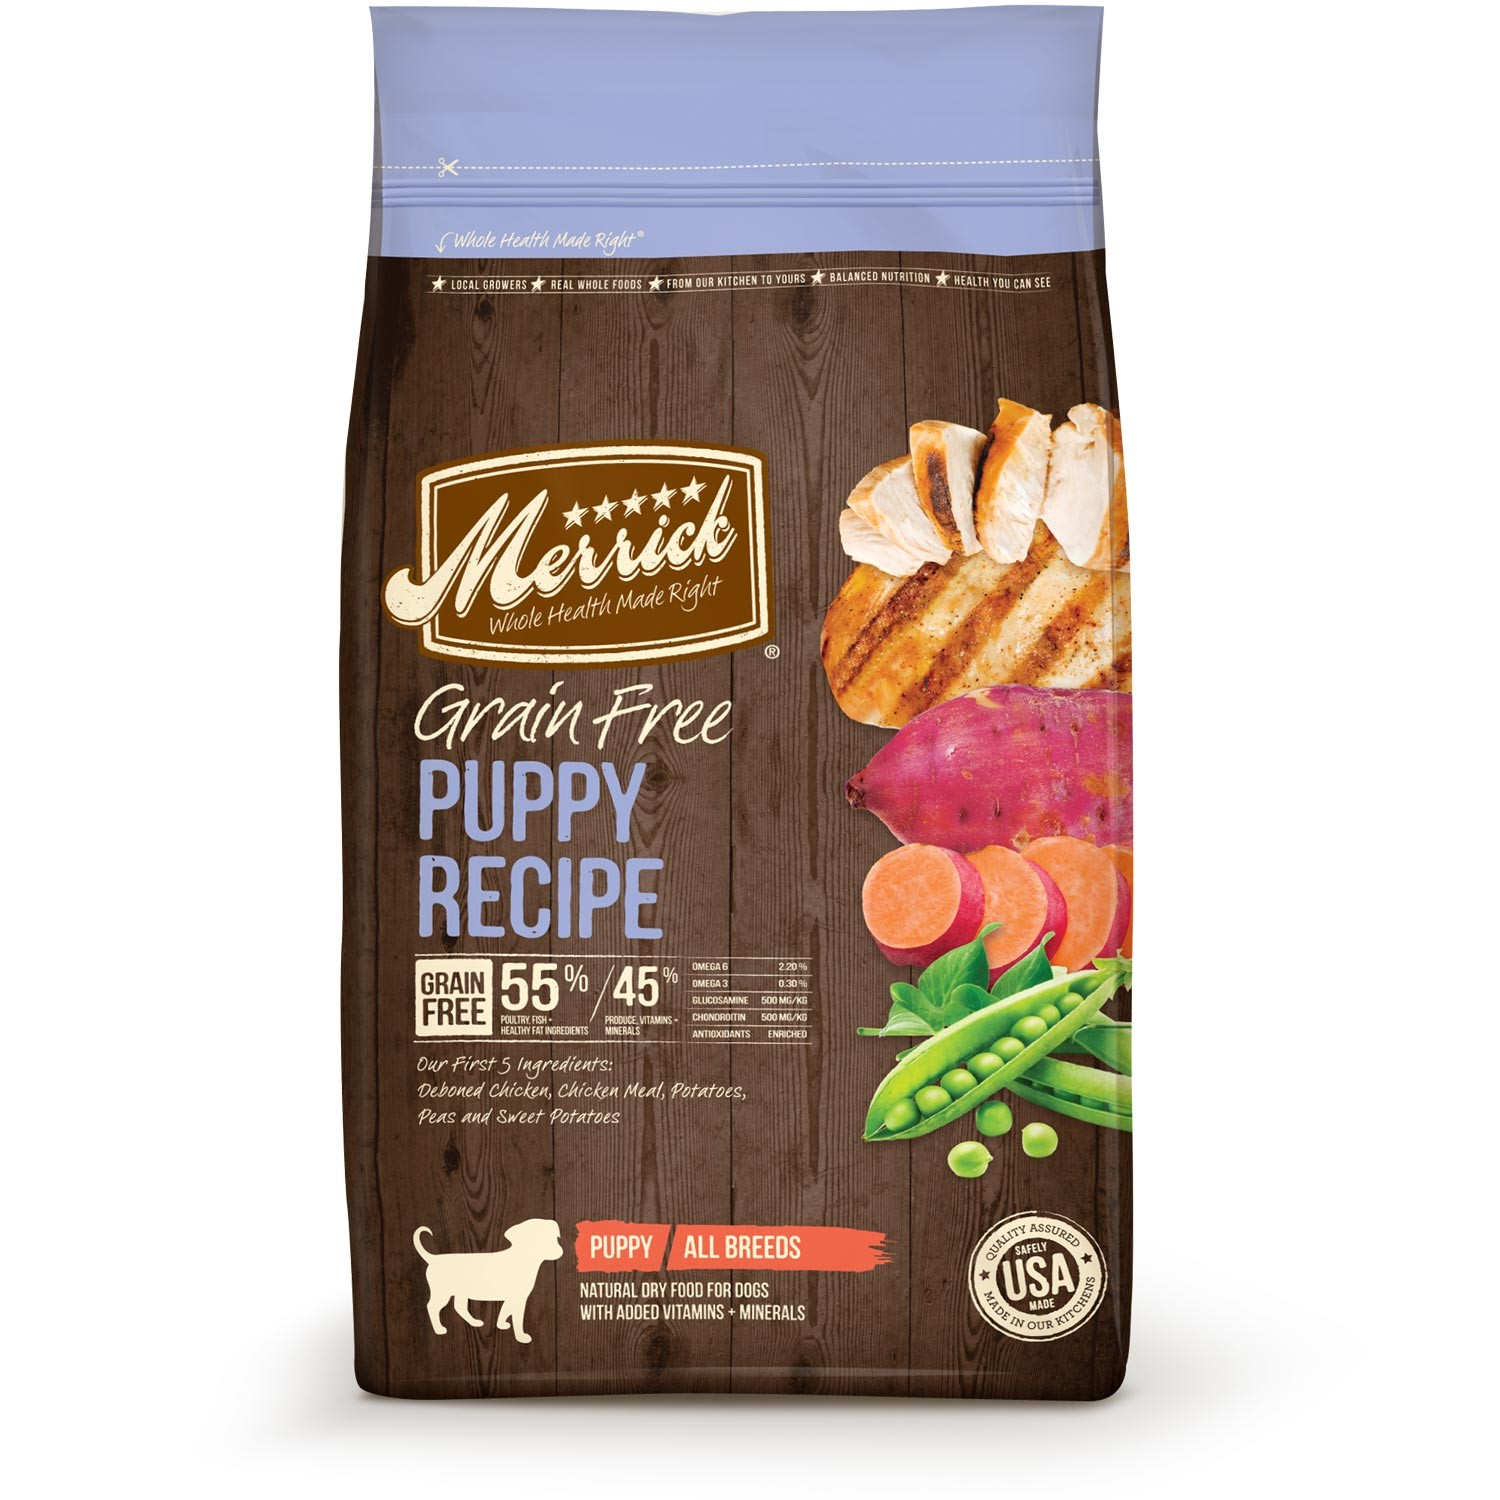 Merrick Real Grain Free Real Chicken Puppy Food